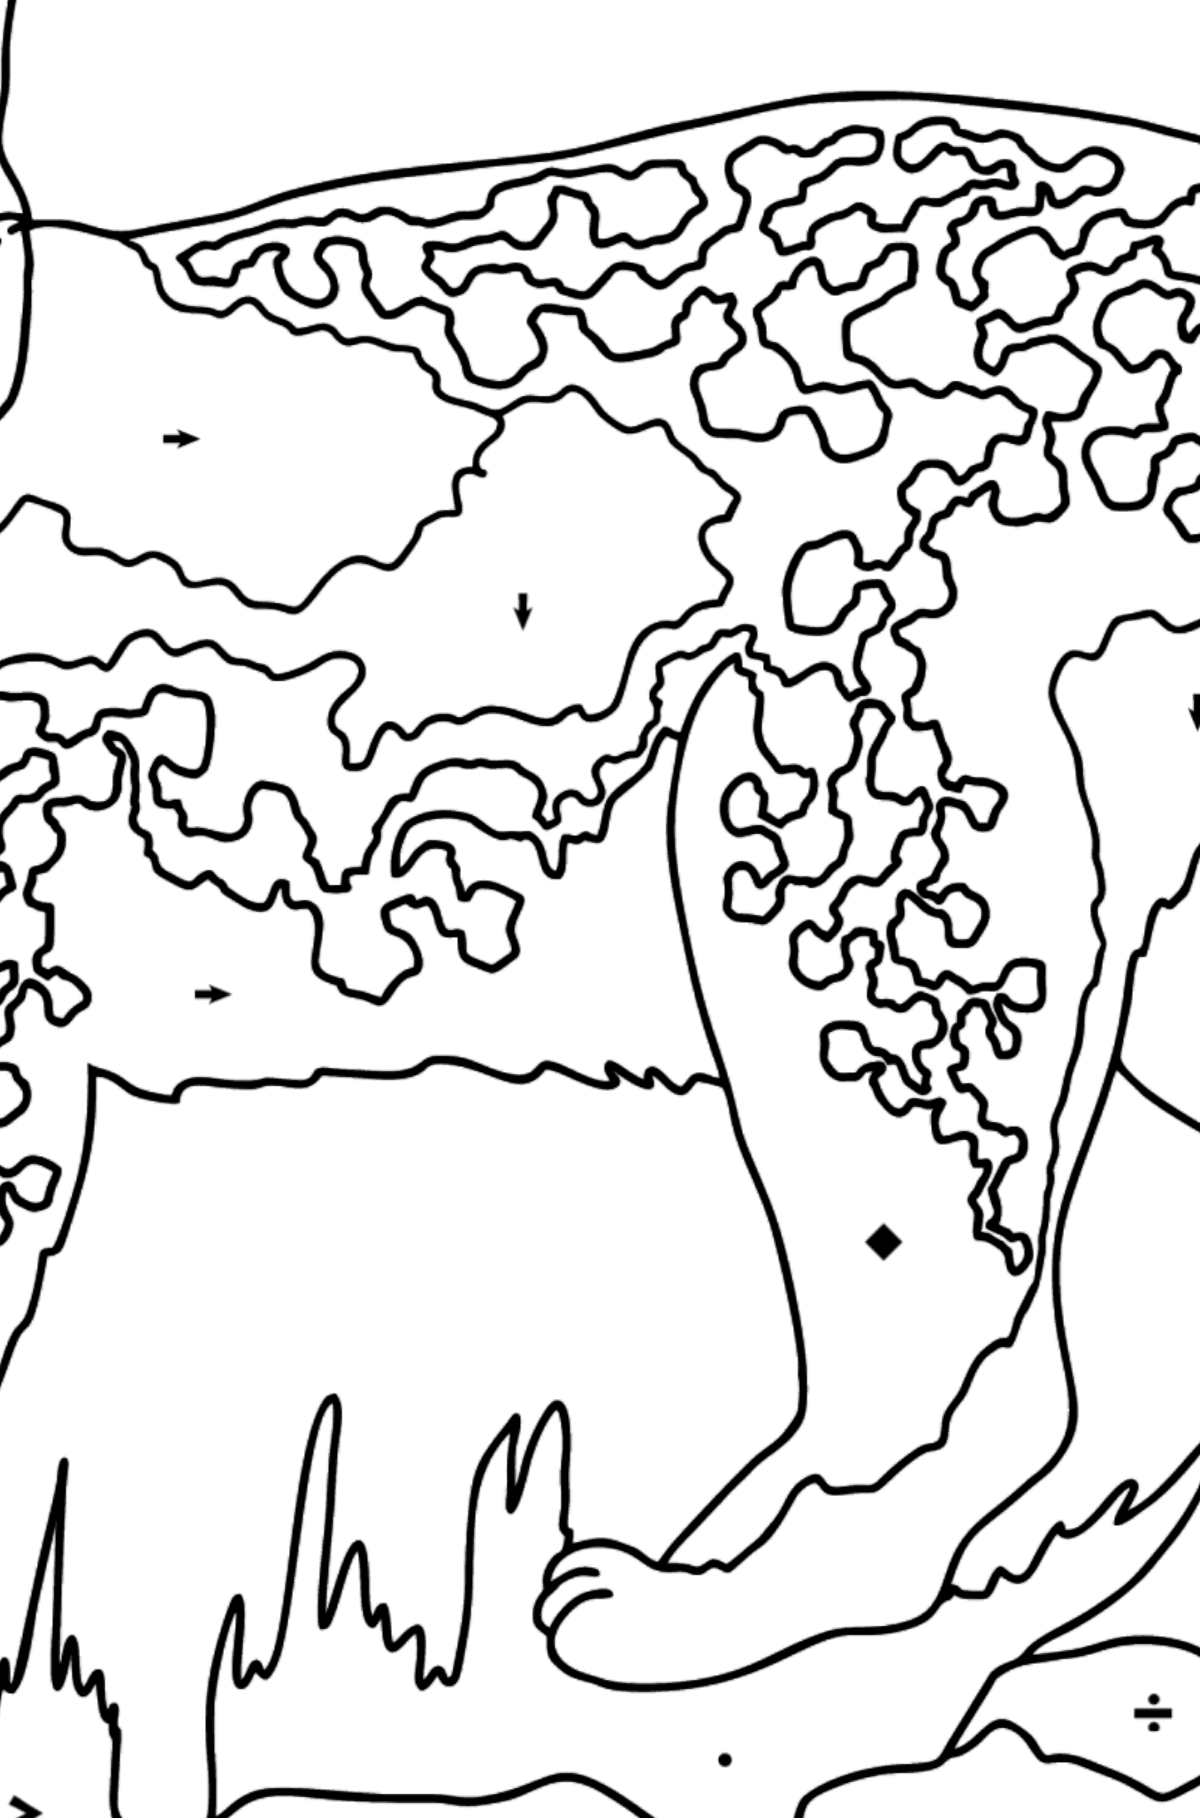 Coloring Page - A Wild Lynx - Coloring by Symbols for Kids